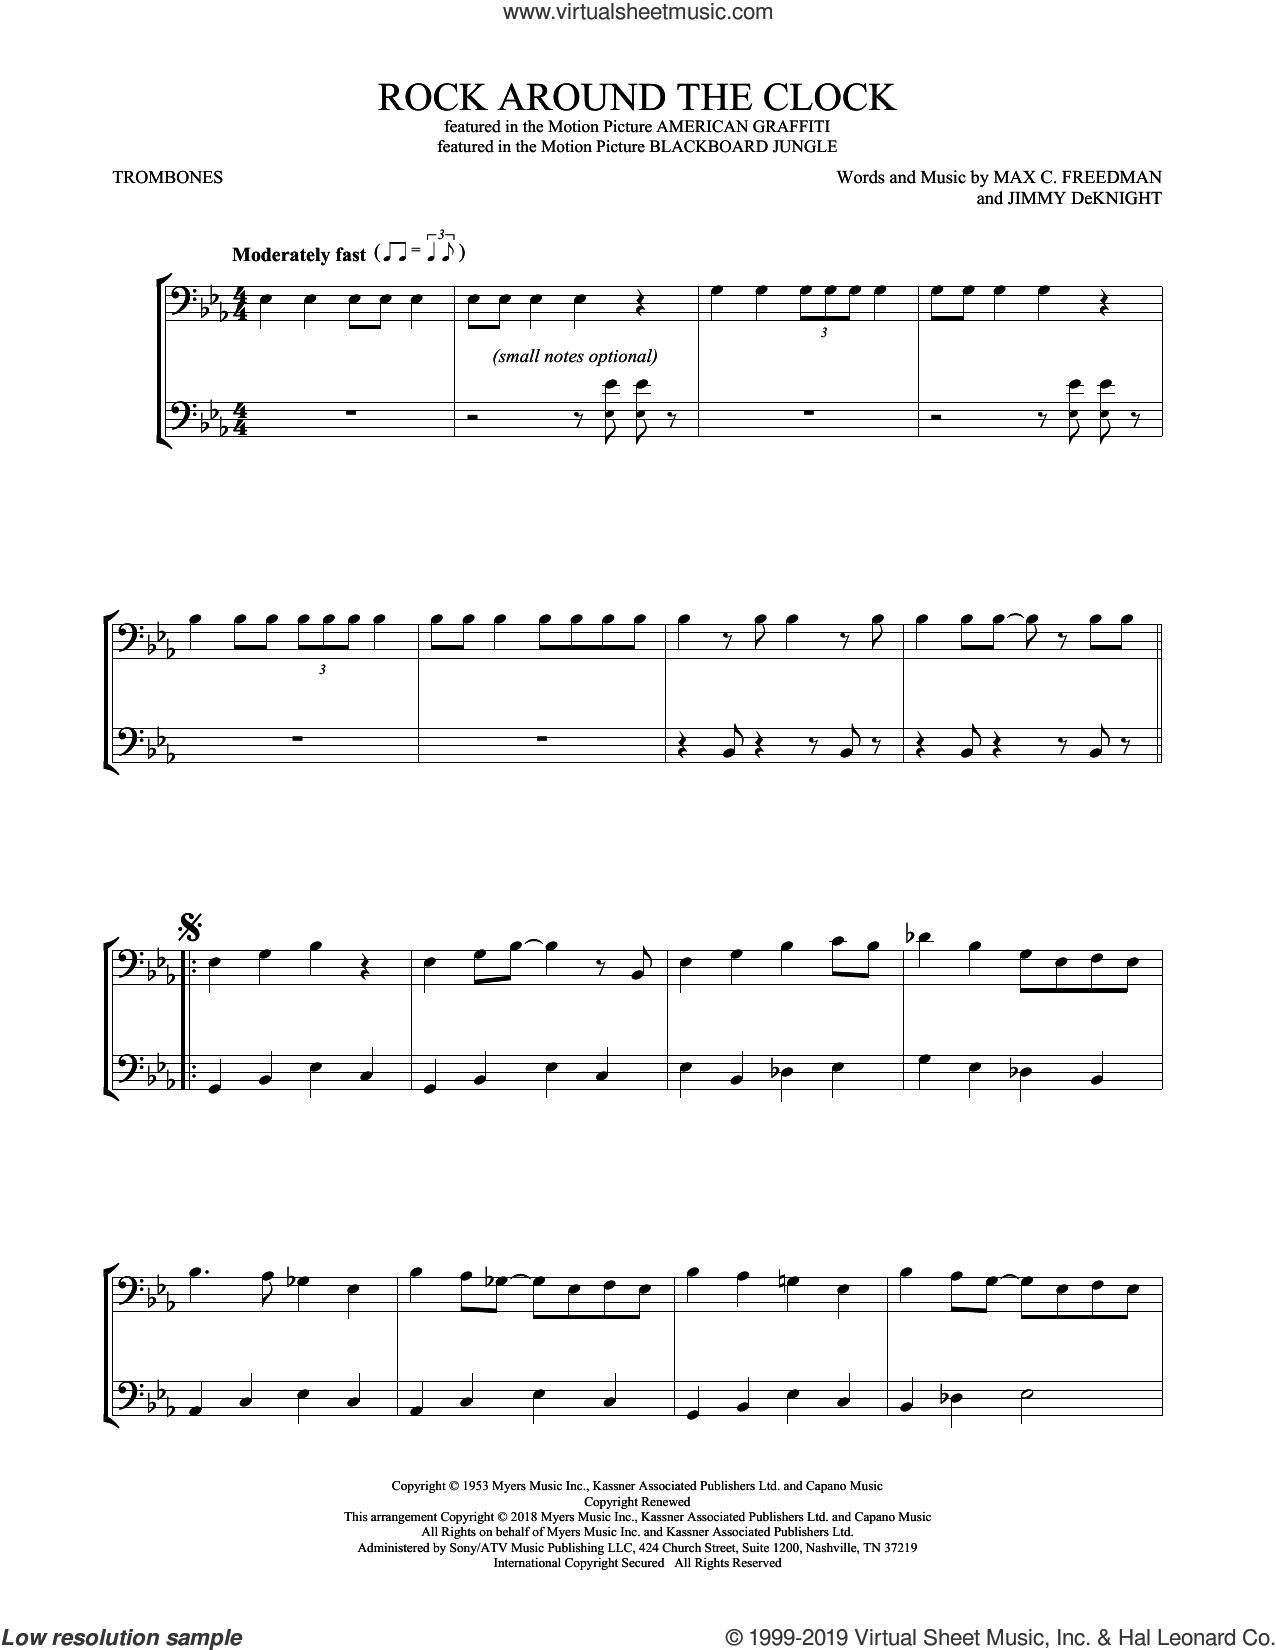 Rock Around The Clock sheet music for two trombones (duet, duets) by Bill Haley & His Comets, Jimmy DeKnight and Max C. Freedman, intermediate skill level